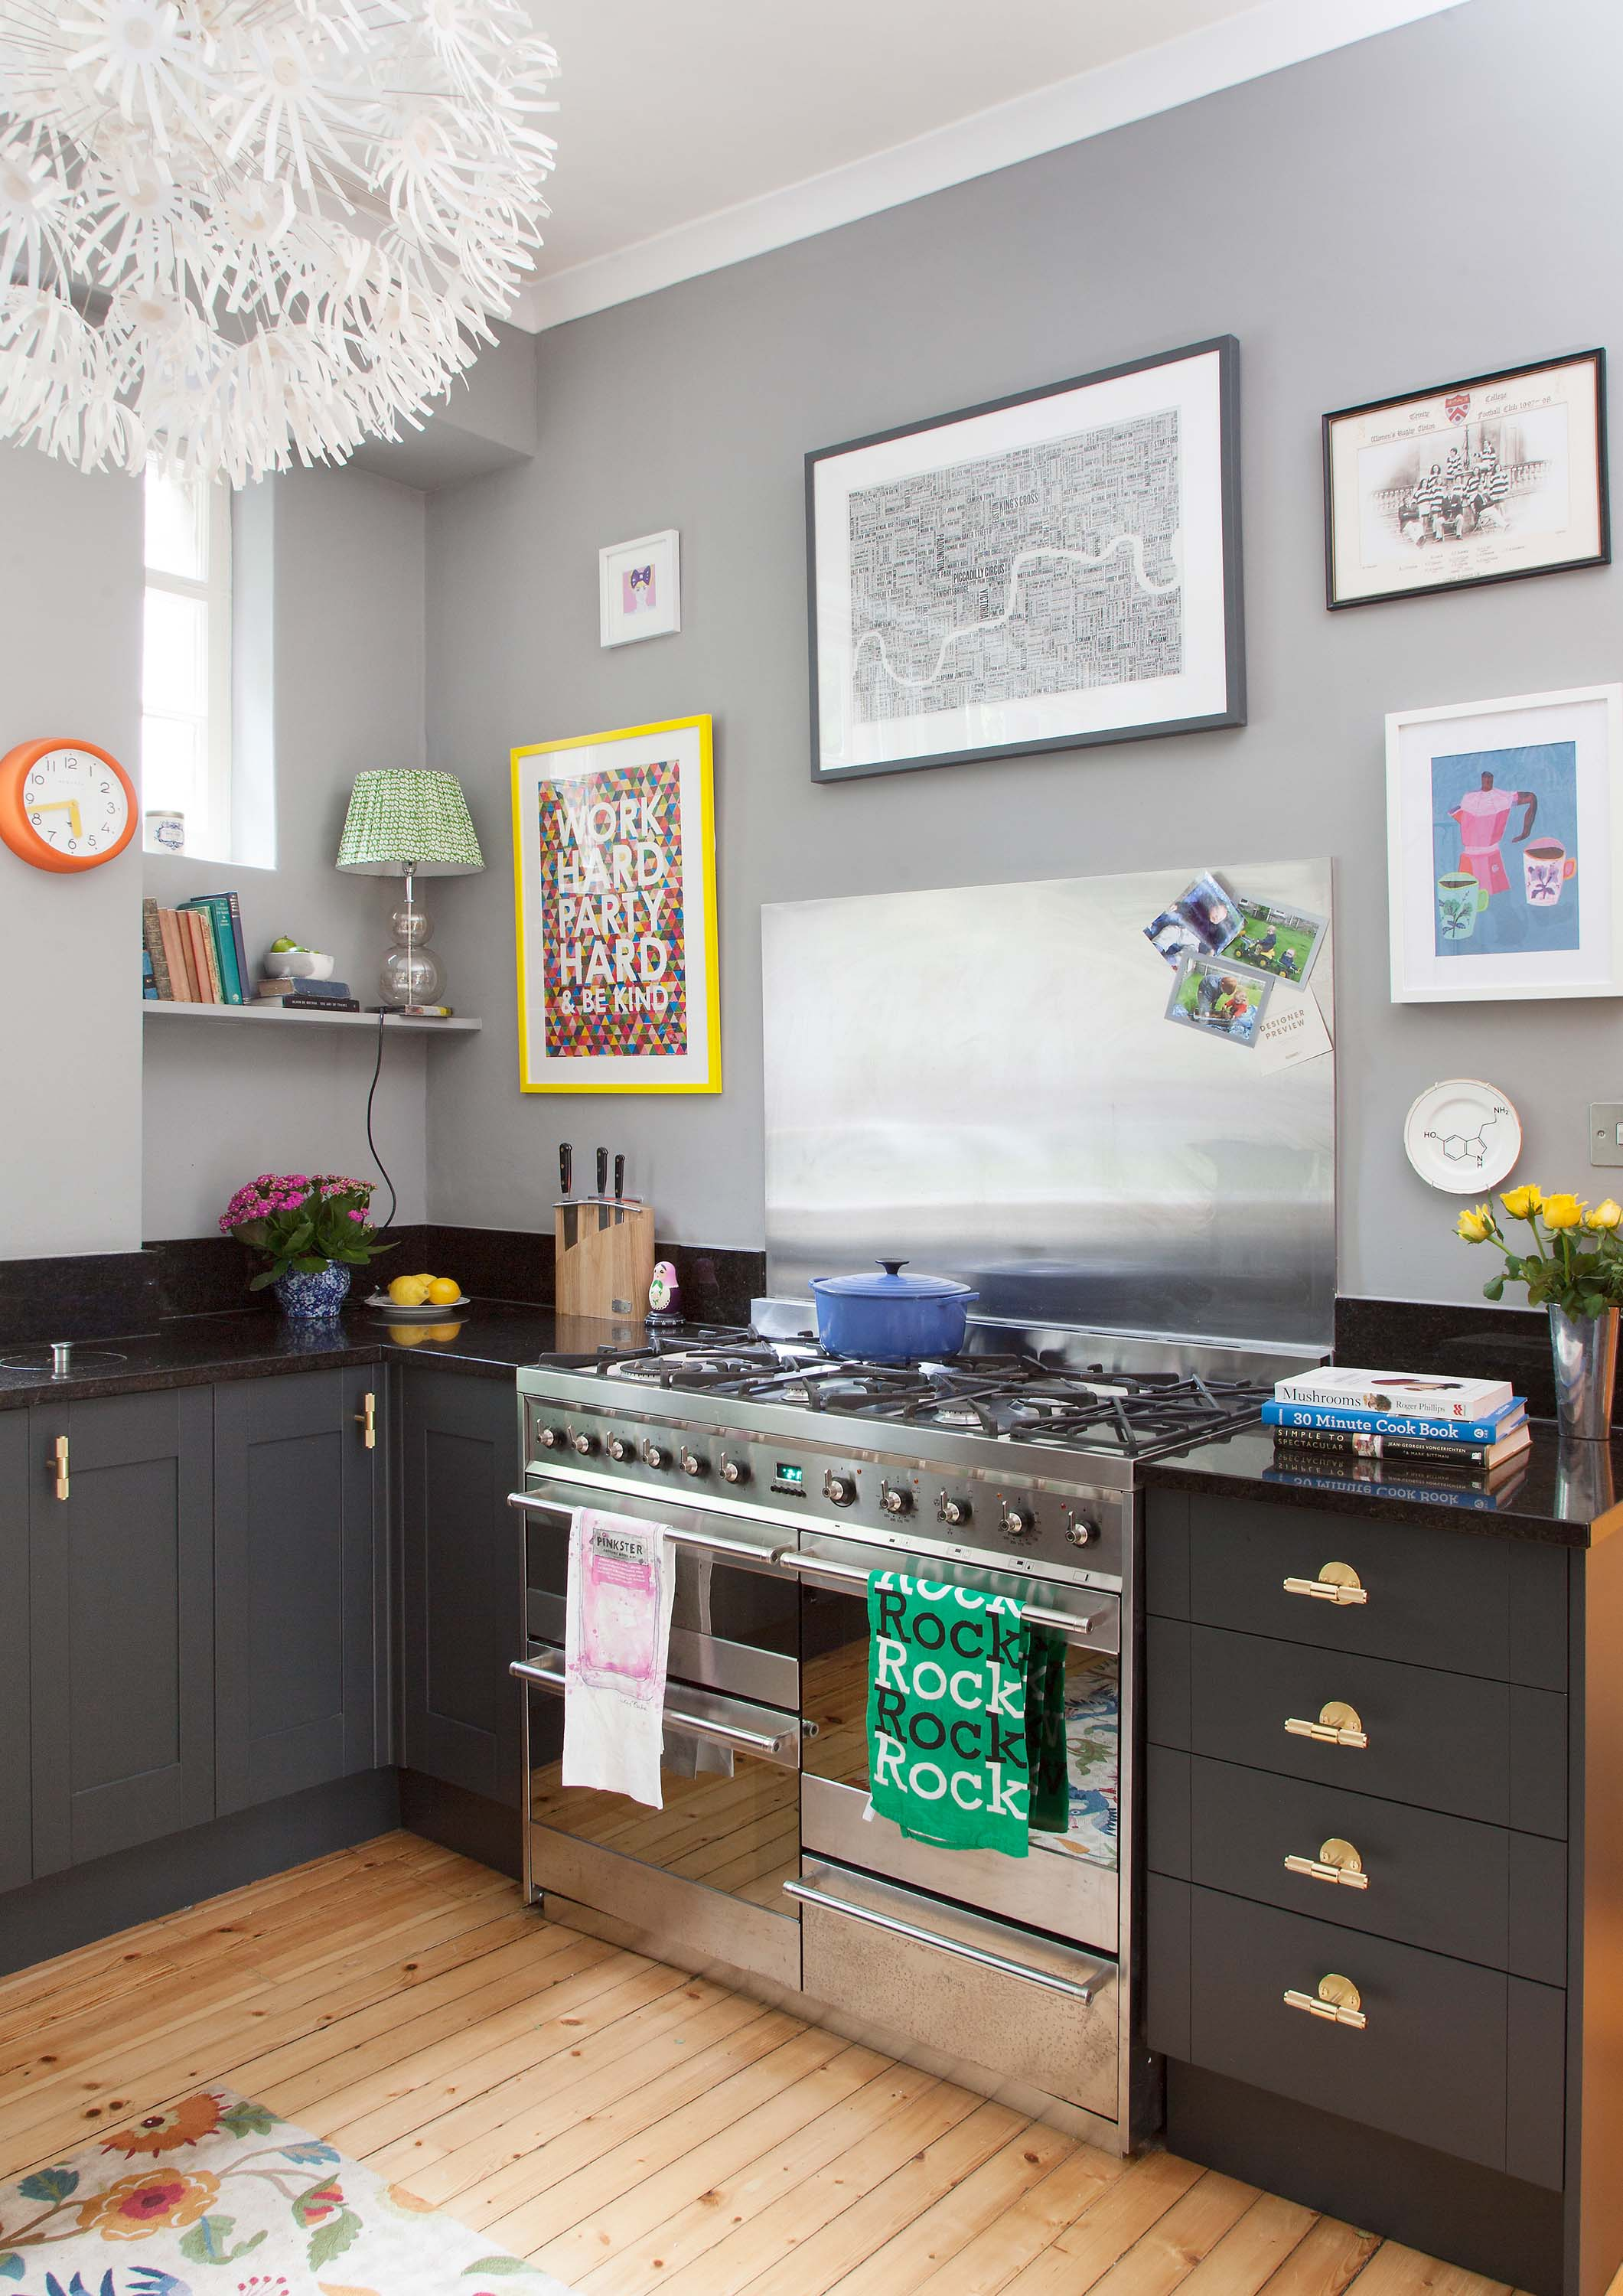 The Pink House kitchen makeover gallery wall